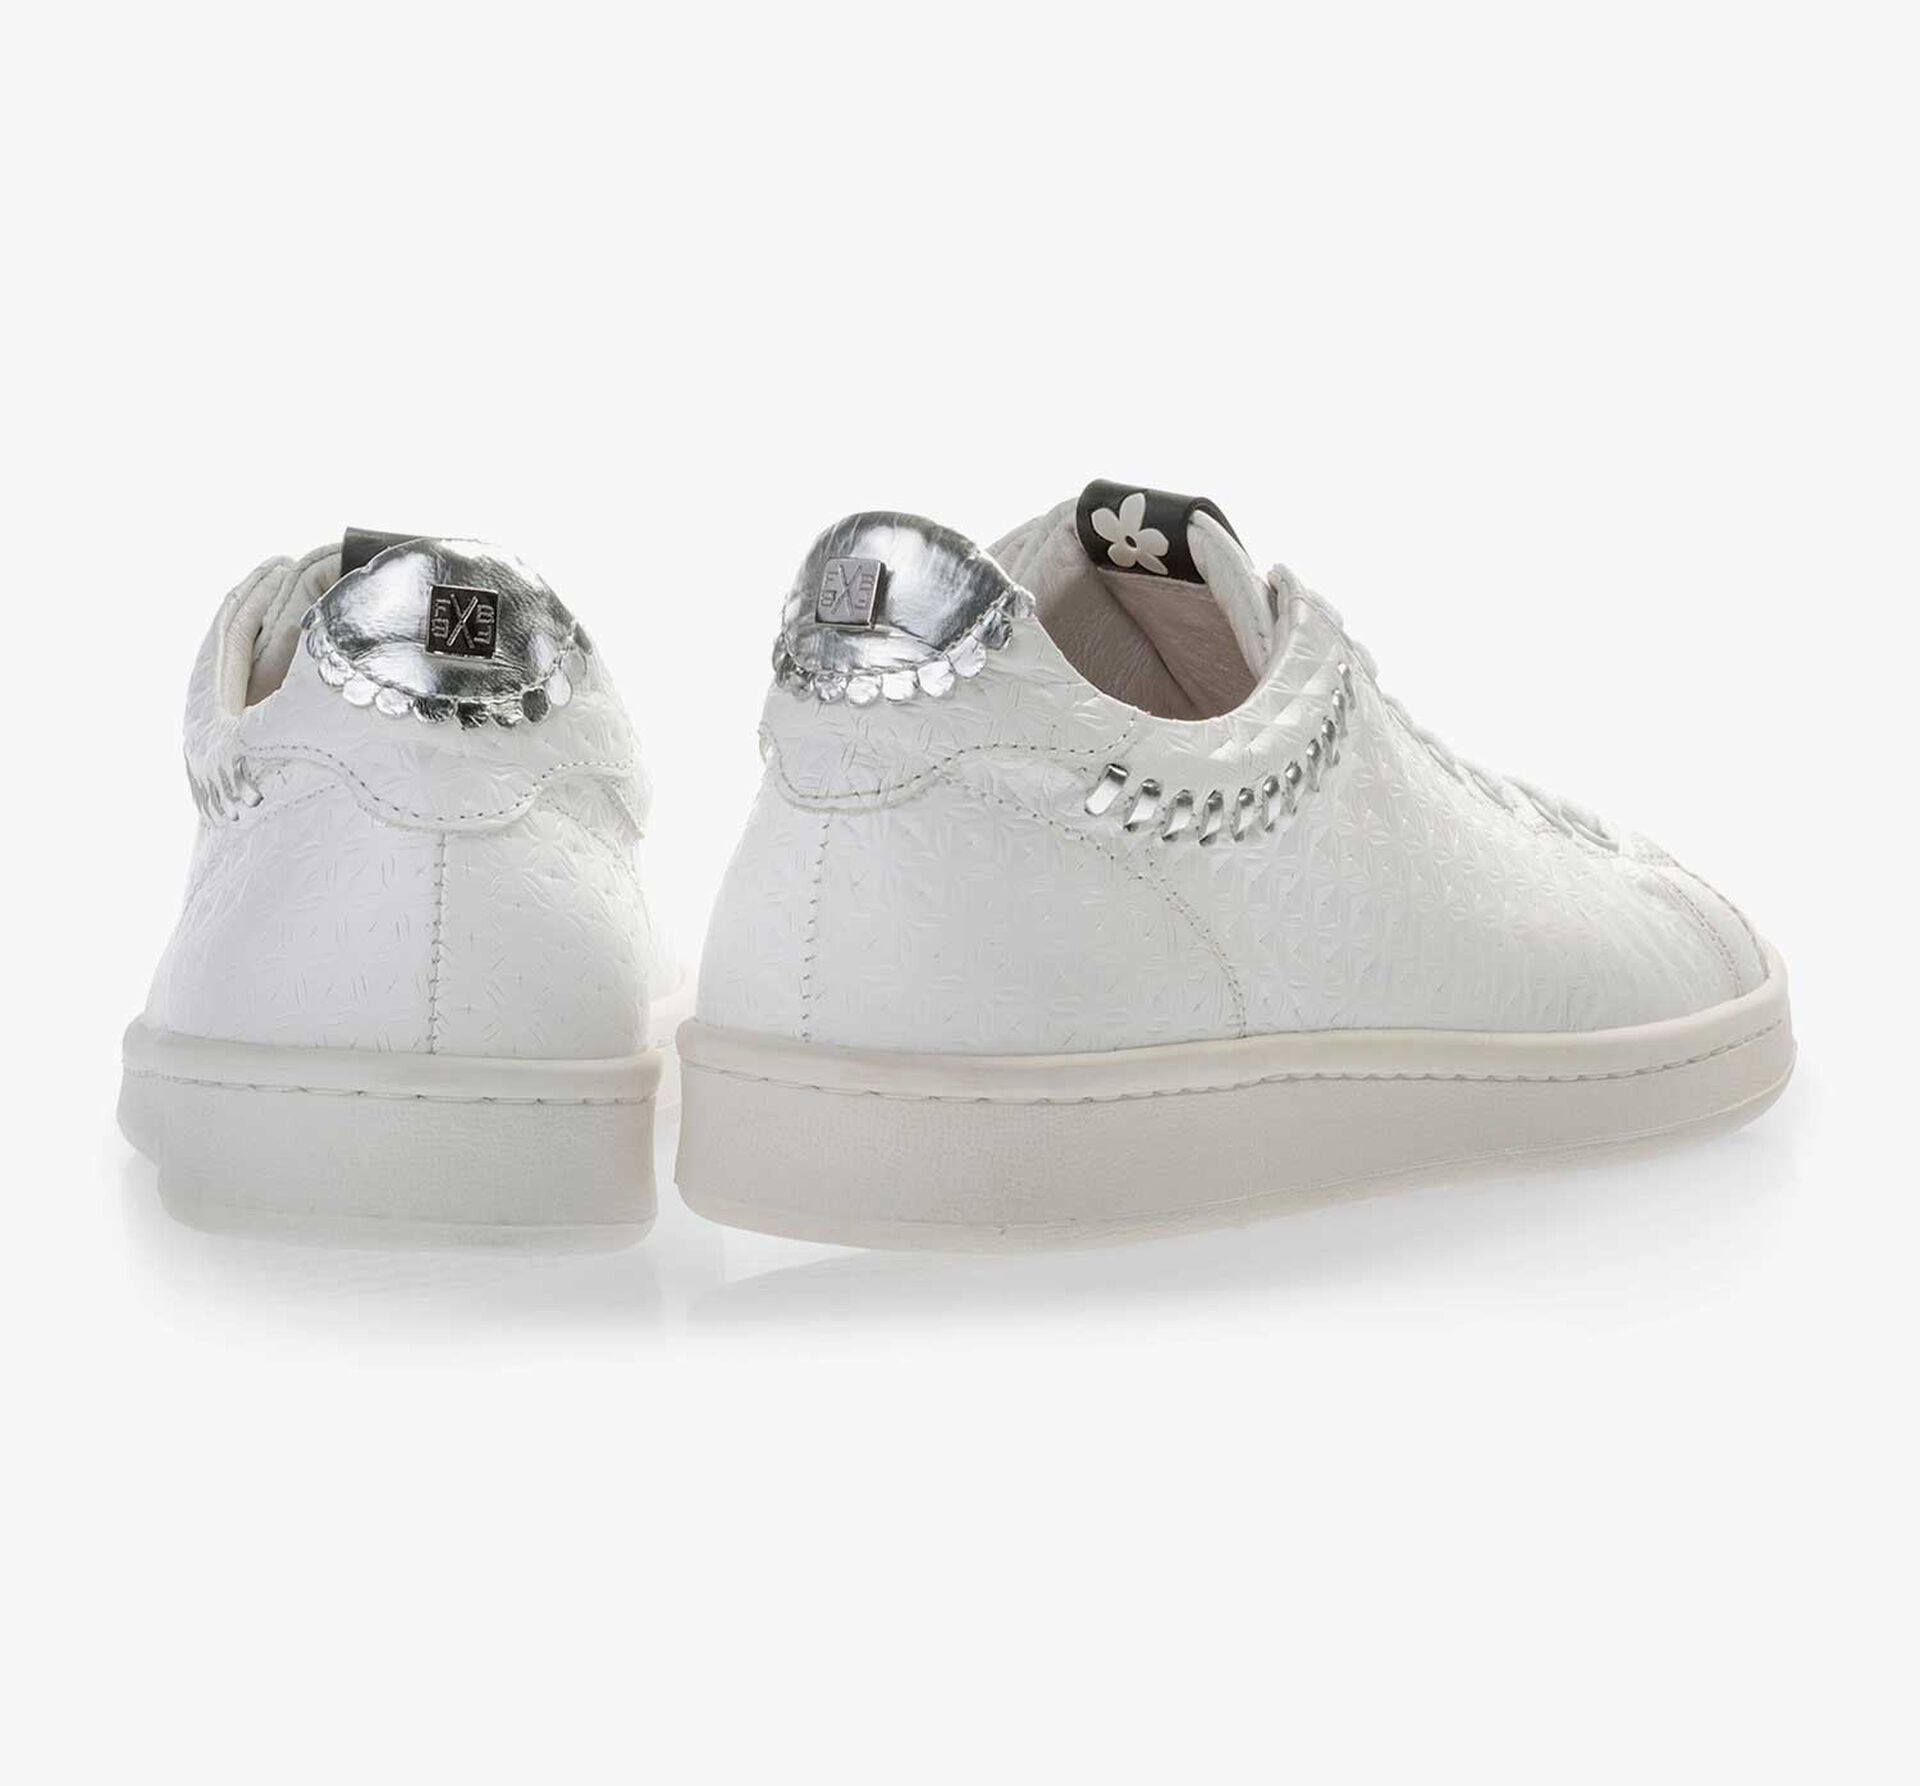 White patterned leather sneaker